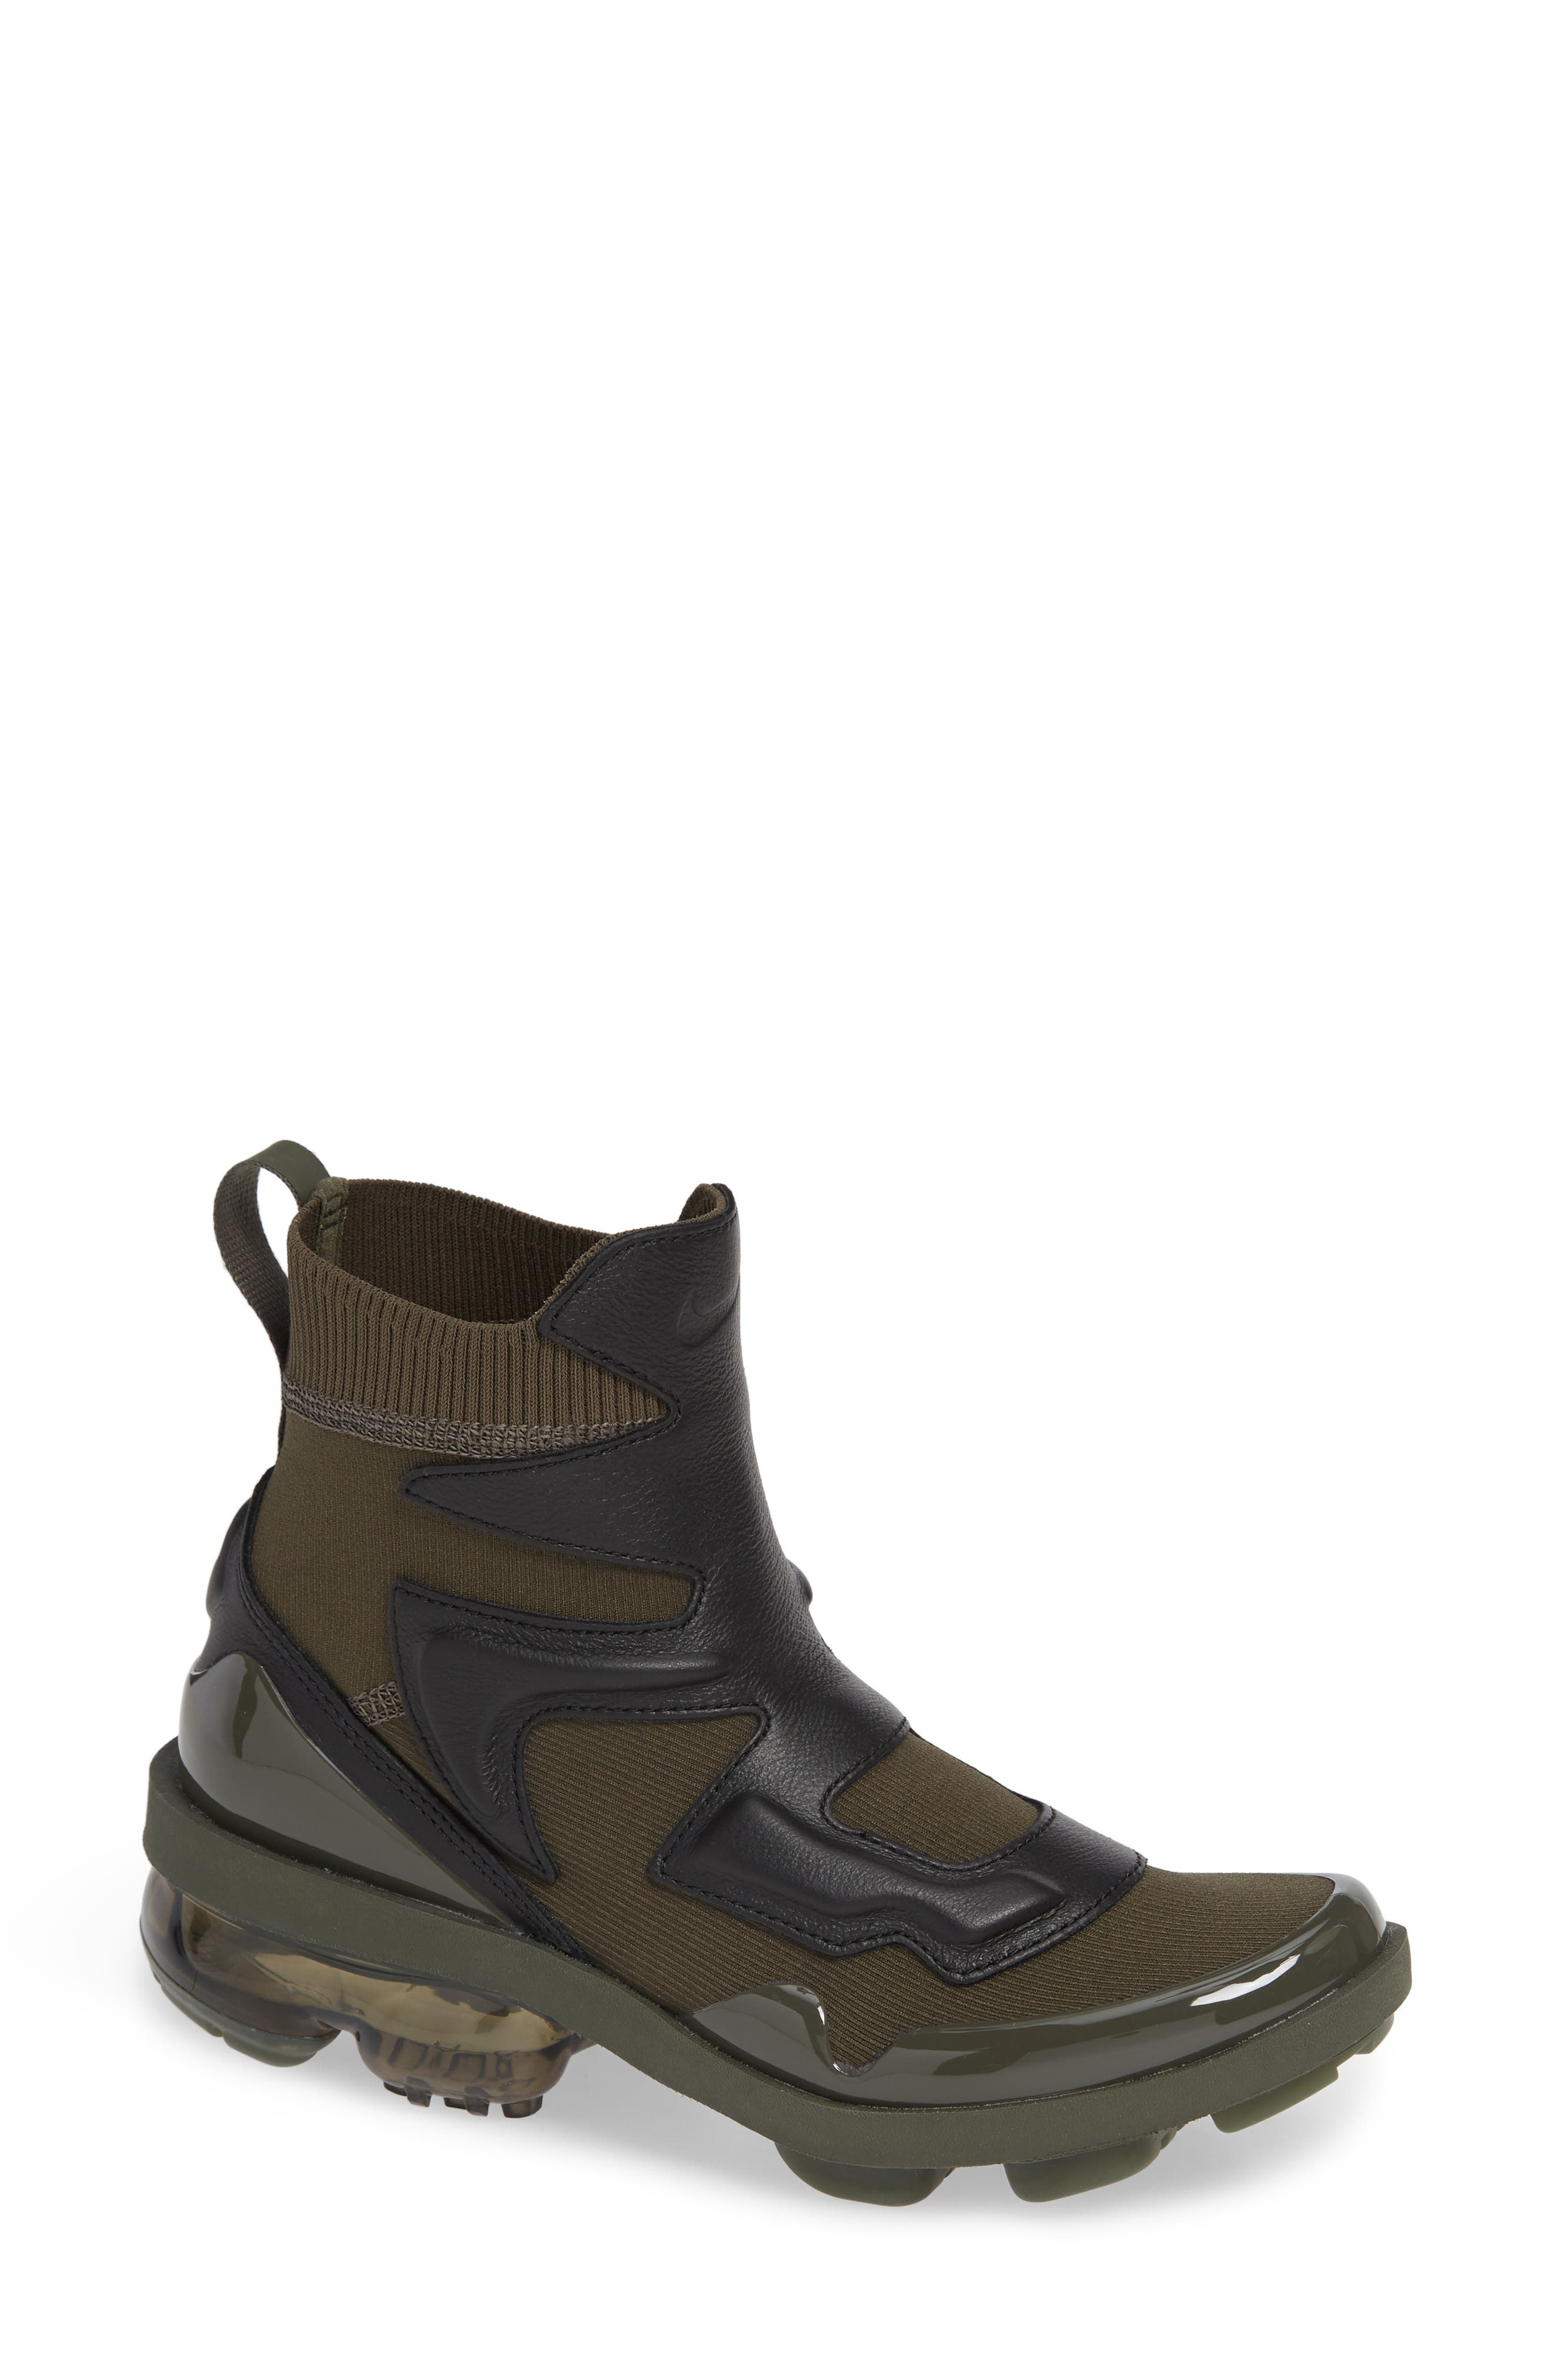 Air Vapormax Light II Sneaker,                             Main thumbnail 1, color,                             CARGO KHAKI/ BLACK